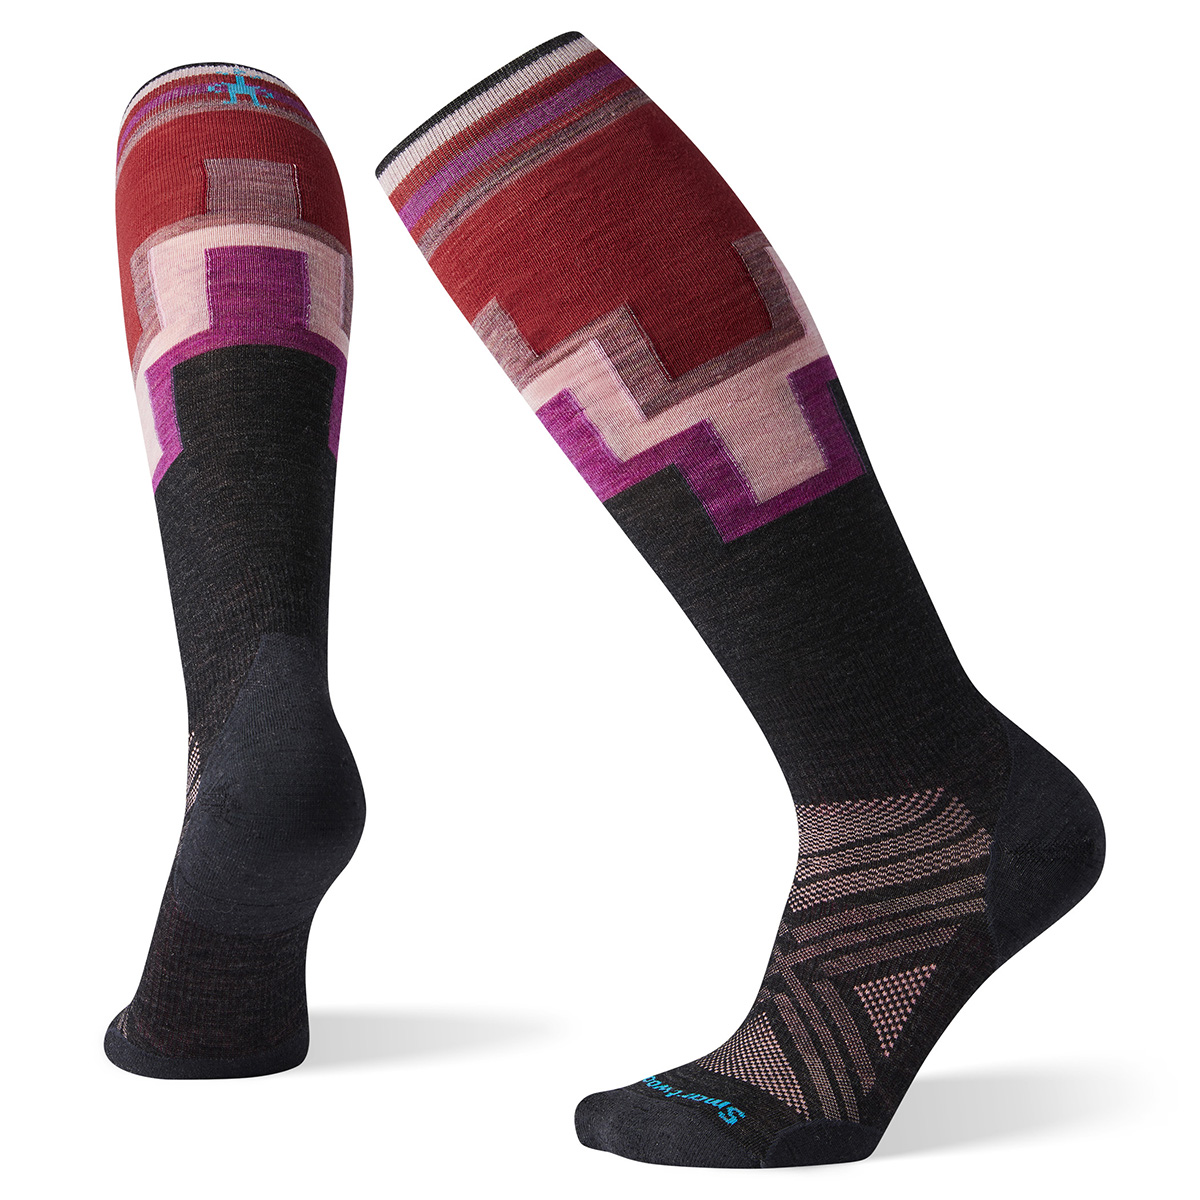 Smartwool Women's PhD® Ski Ultra Light Pattern Socks